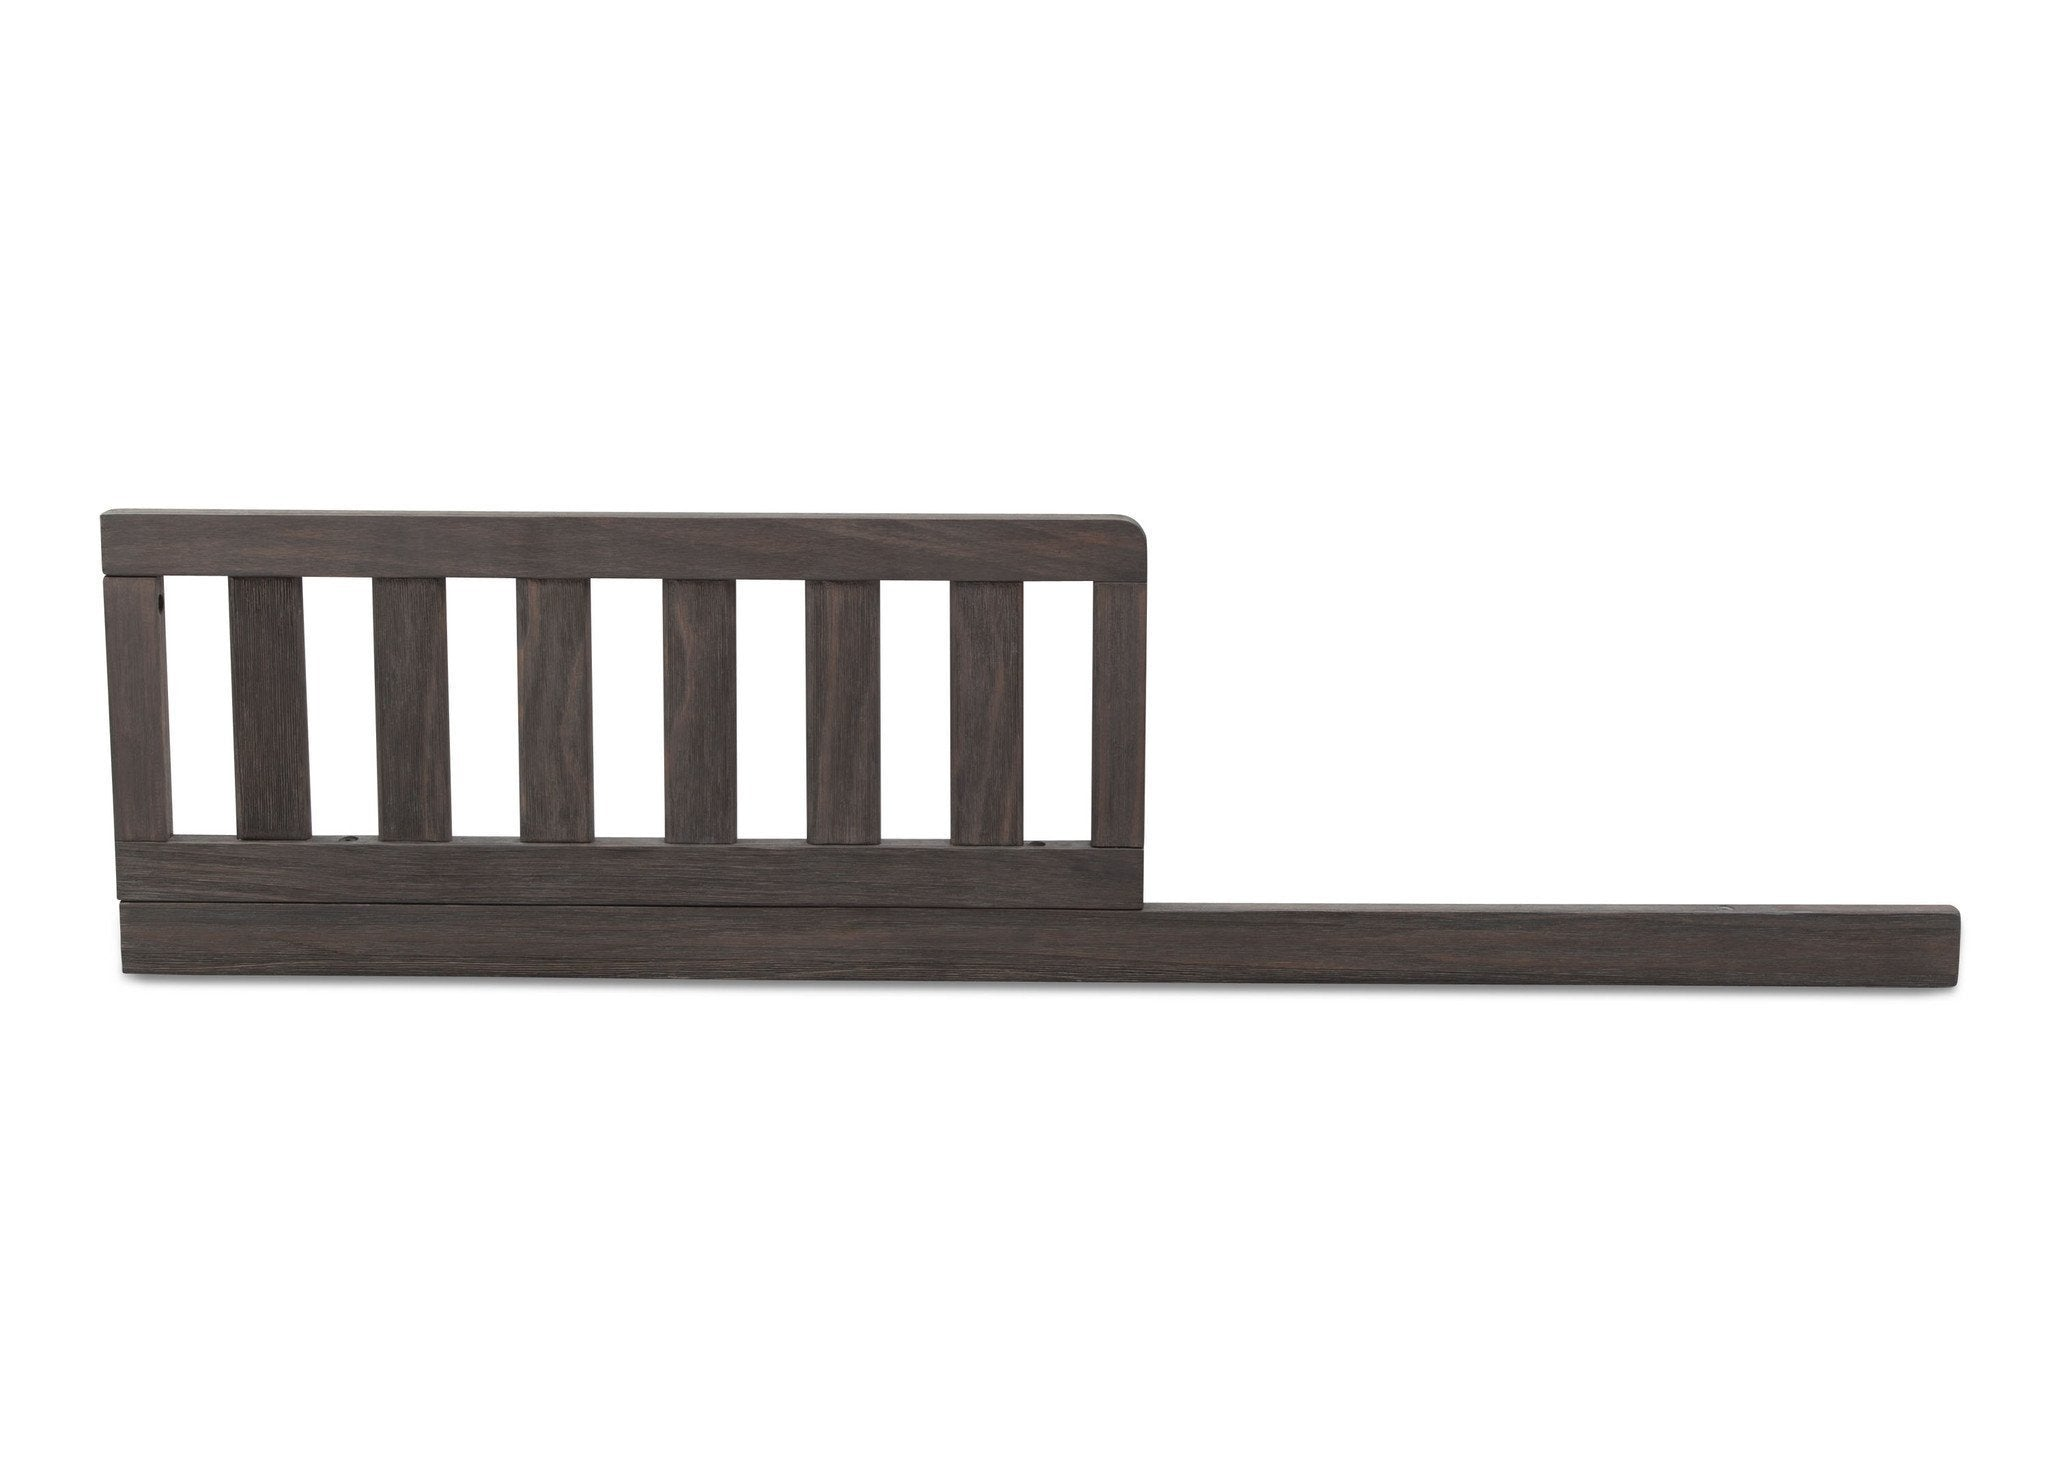 Serta Rustic Grey (084) Toddler Guardrail/Daybed Rail Kit, Front View a2a